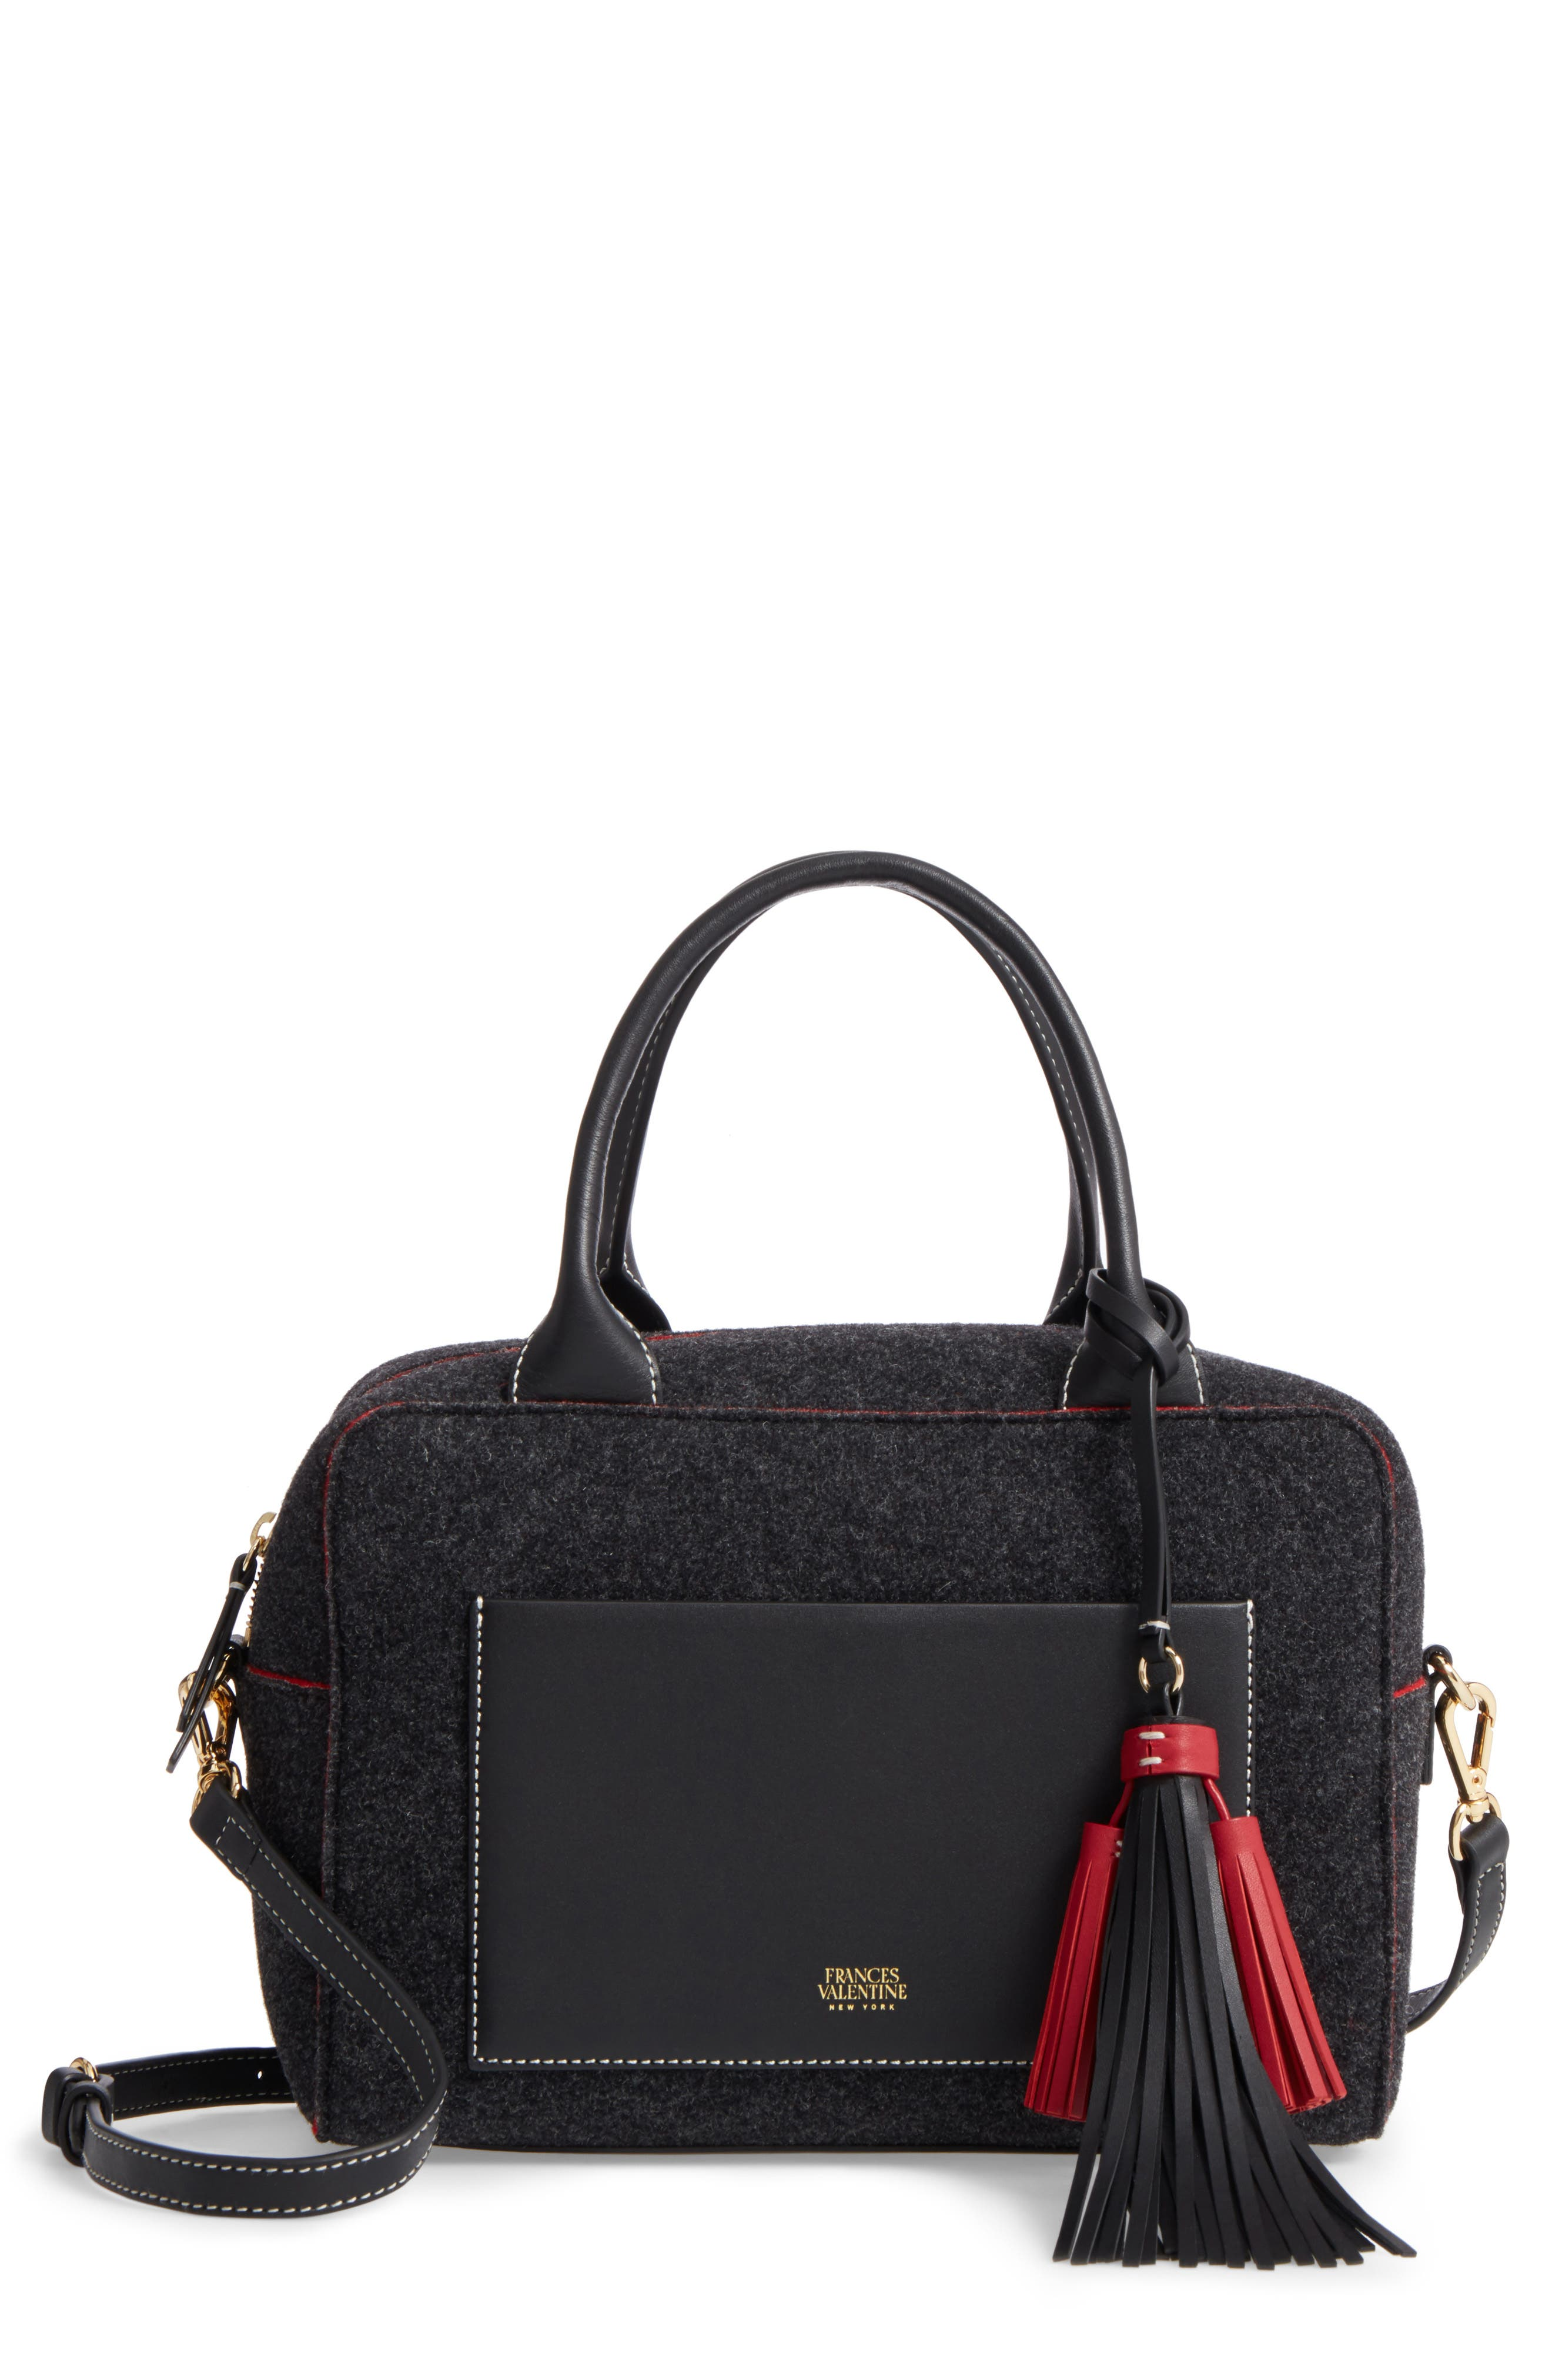 Medium Wool & Leather Satchel,                             Main thumbnail 1, color,                             Charcoal